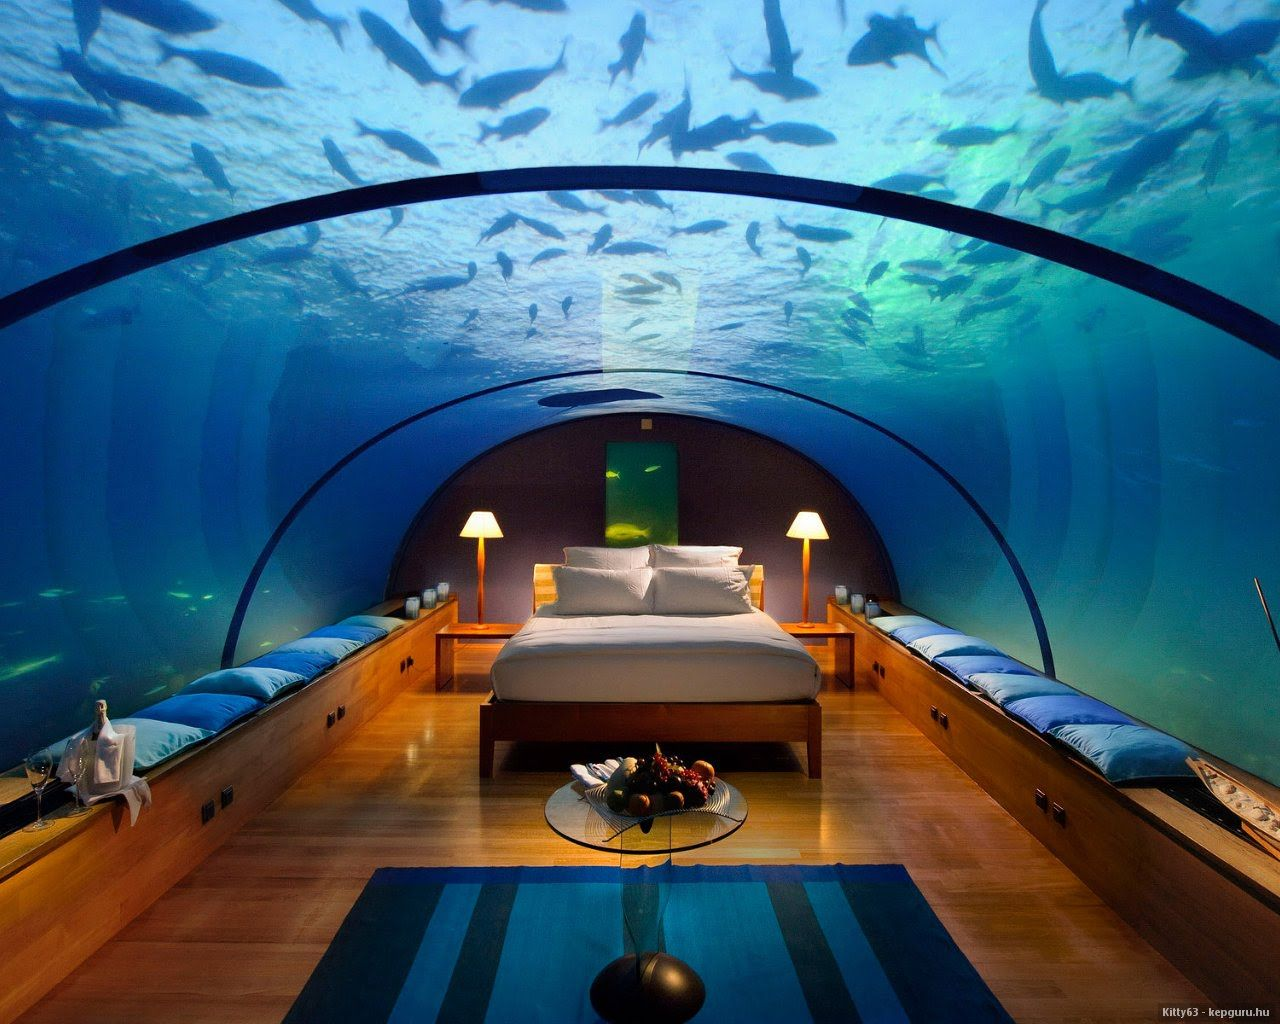 Fish tank electricity cost - Find This Pin And More On Aquarium Bedroom